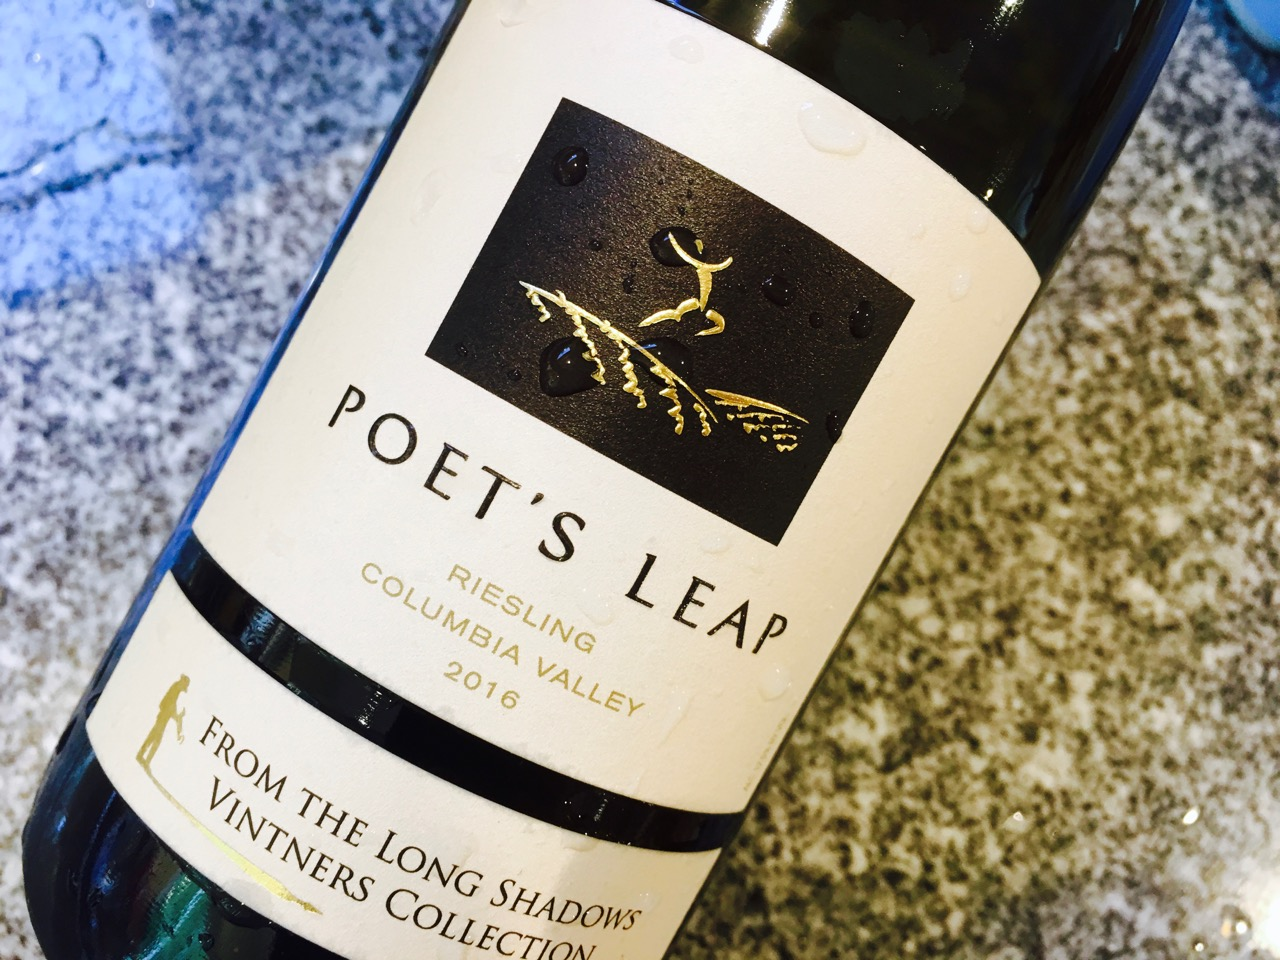 2016 Long Shadows Riesling Poet's Leap Columbia Valley